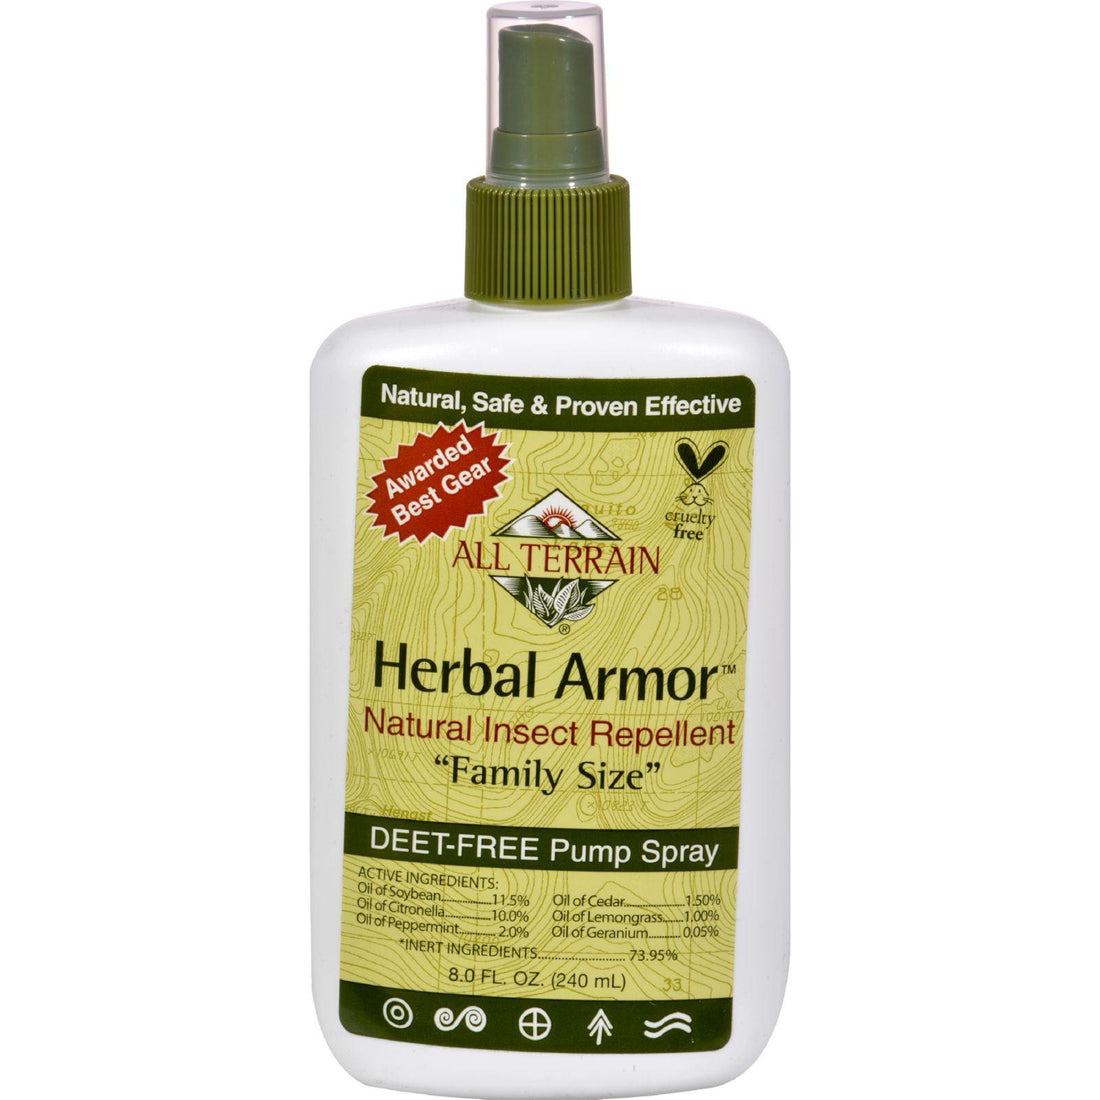 Mother Mantis: All Terrain Herbal Armor Natural Insect Repellent Family Size - 8 Fl Oz All Terrain